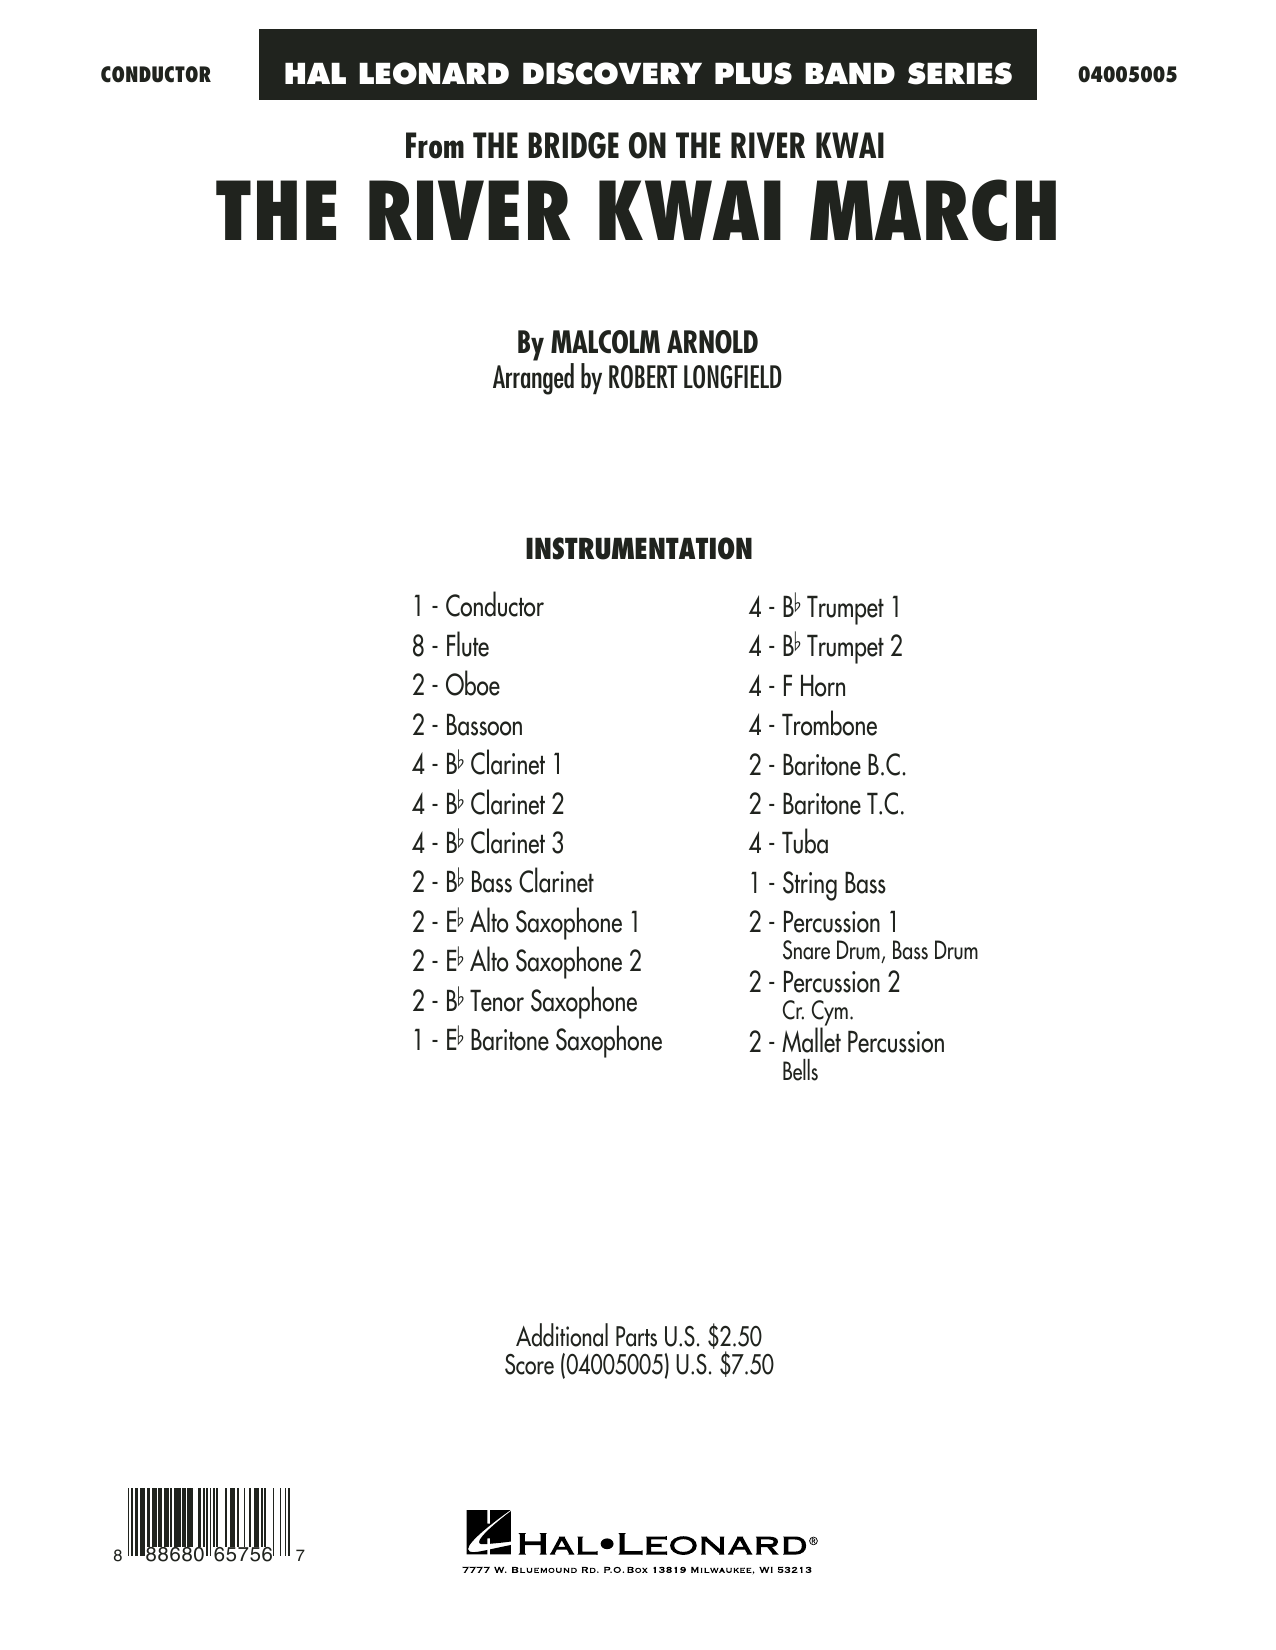 The River Kwai March - Conductor Score (Full Score) Sheet Music